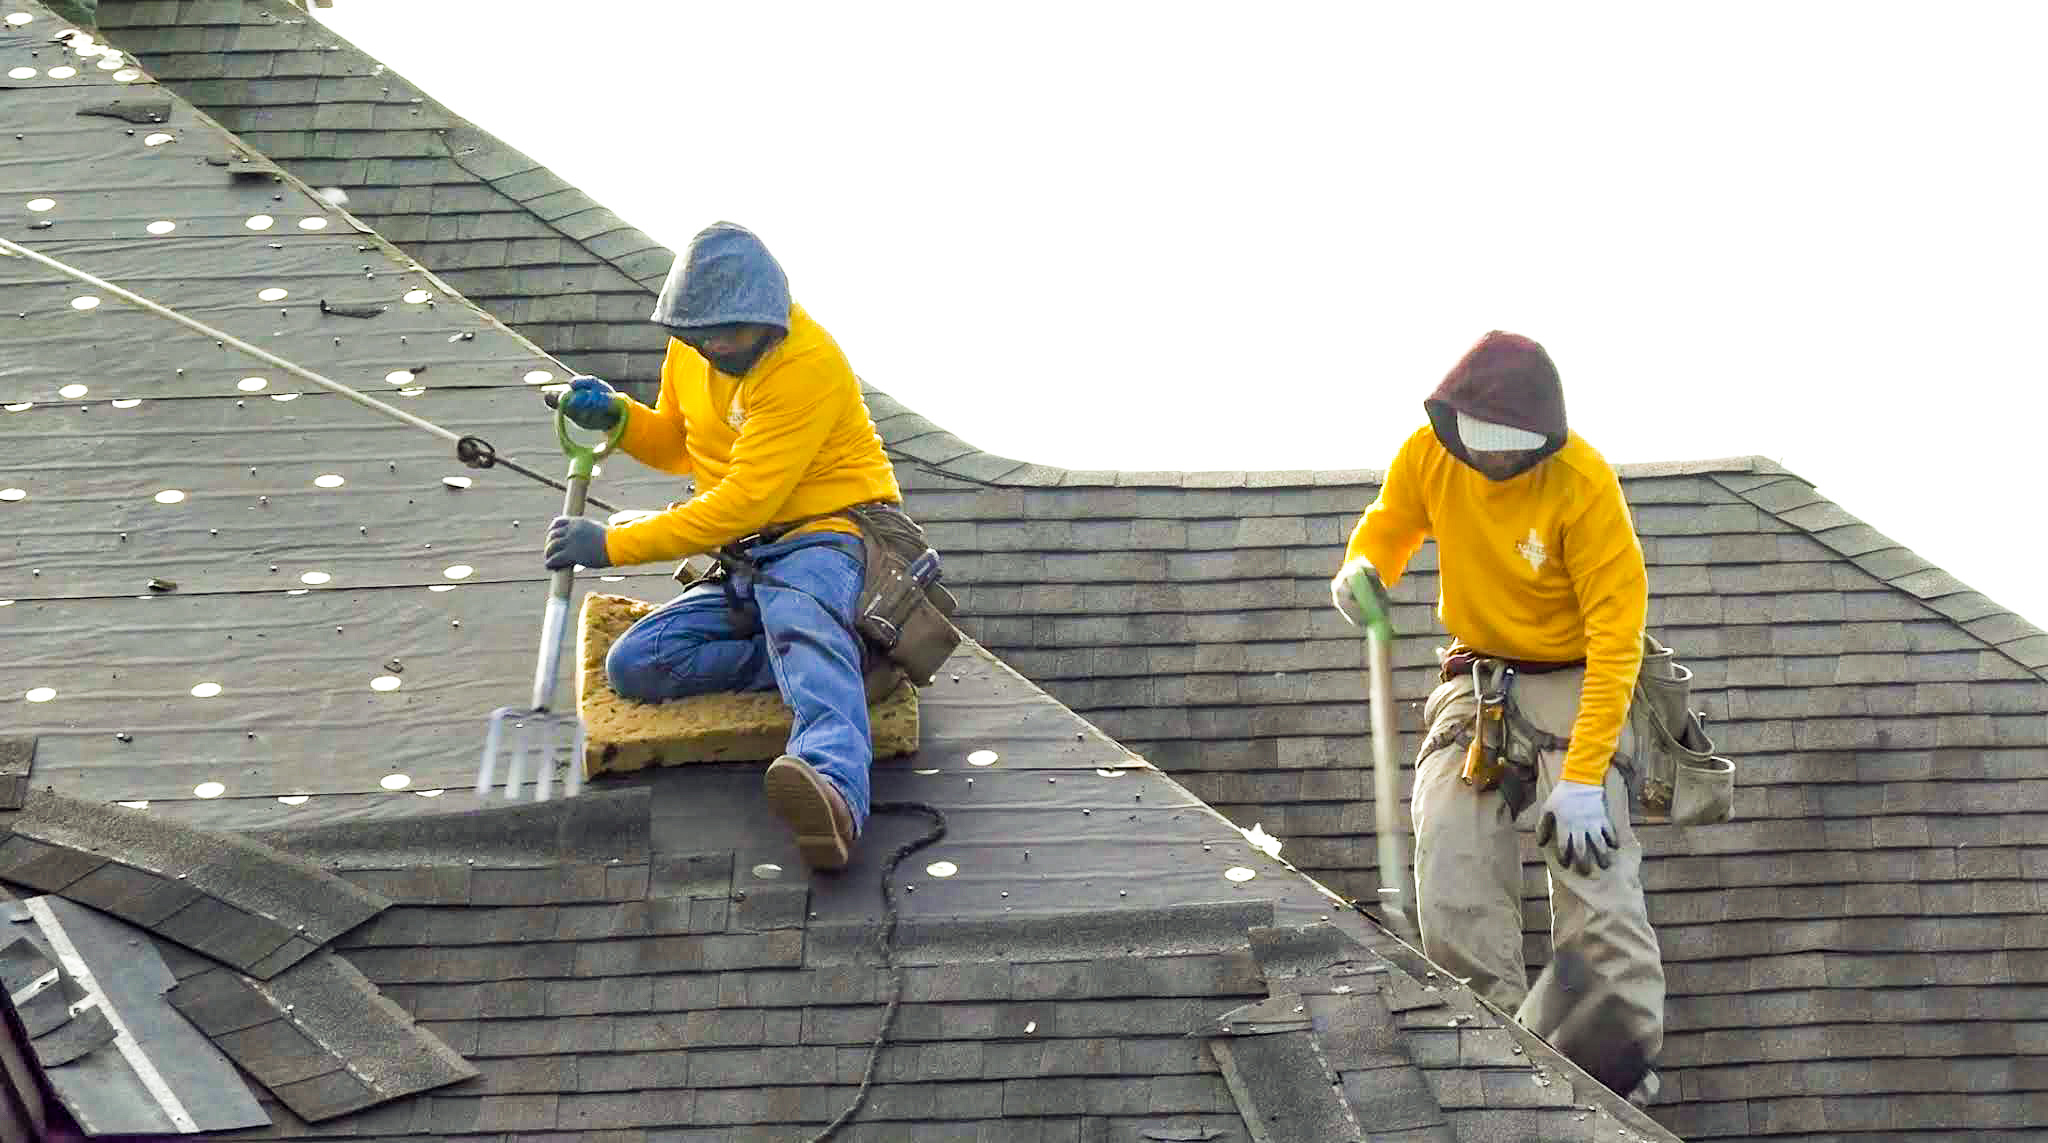 Residential Roofing Services Turnkey Roofing Of Texas